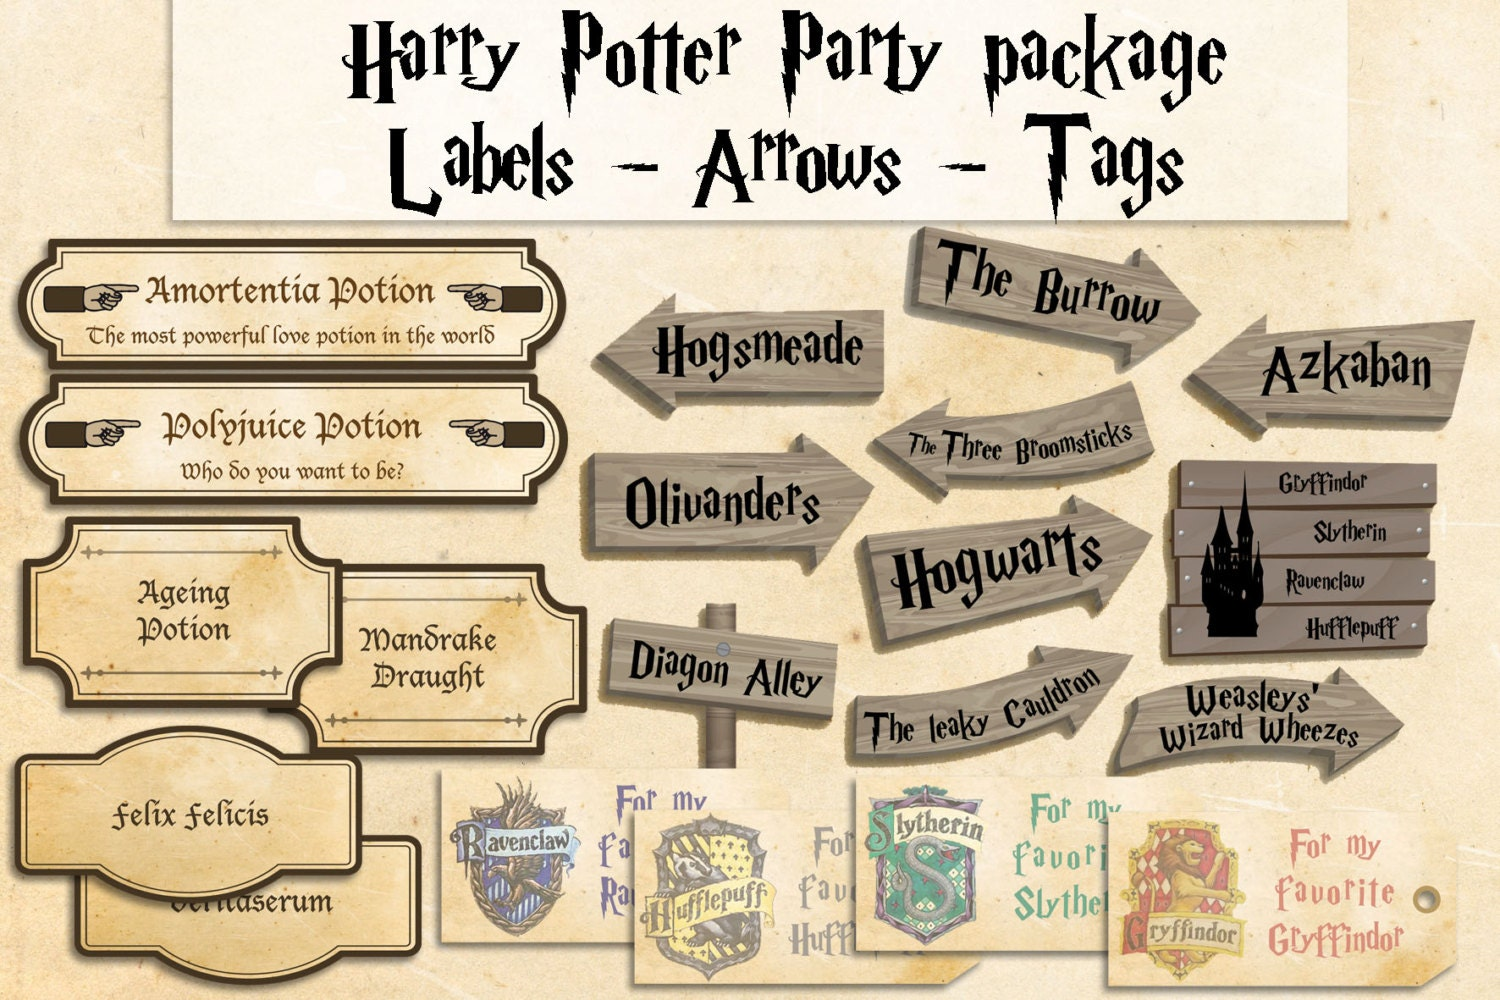 Fabulous image intended for harry potter decorations printable